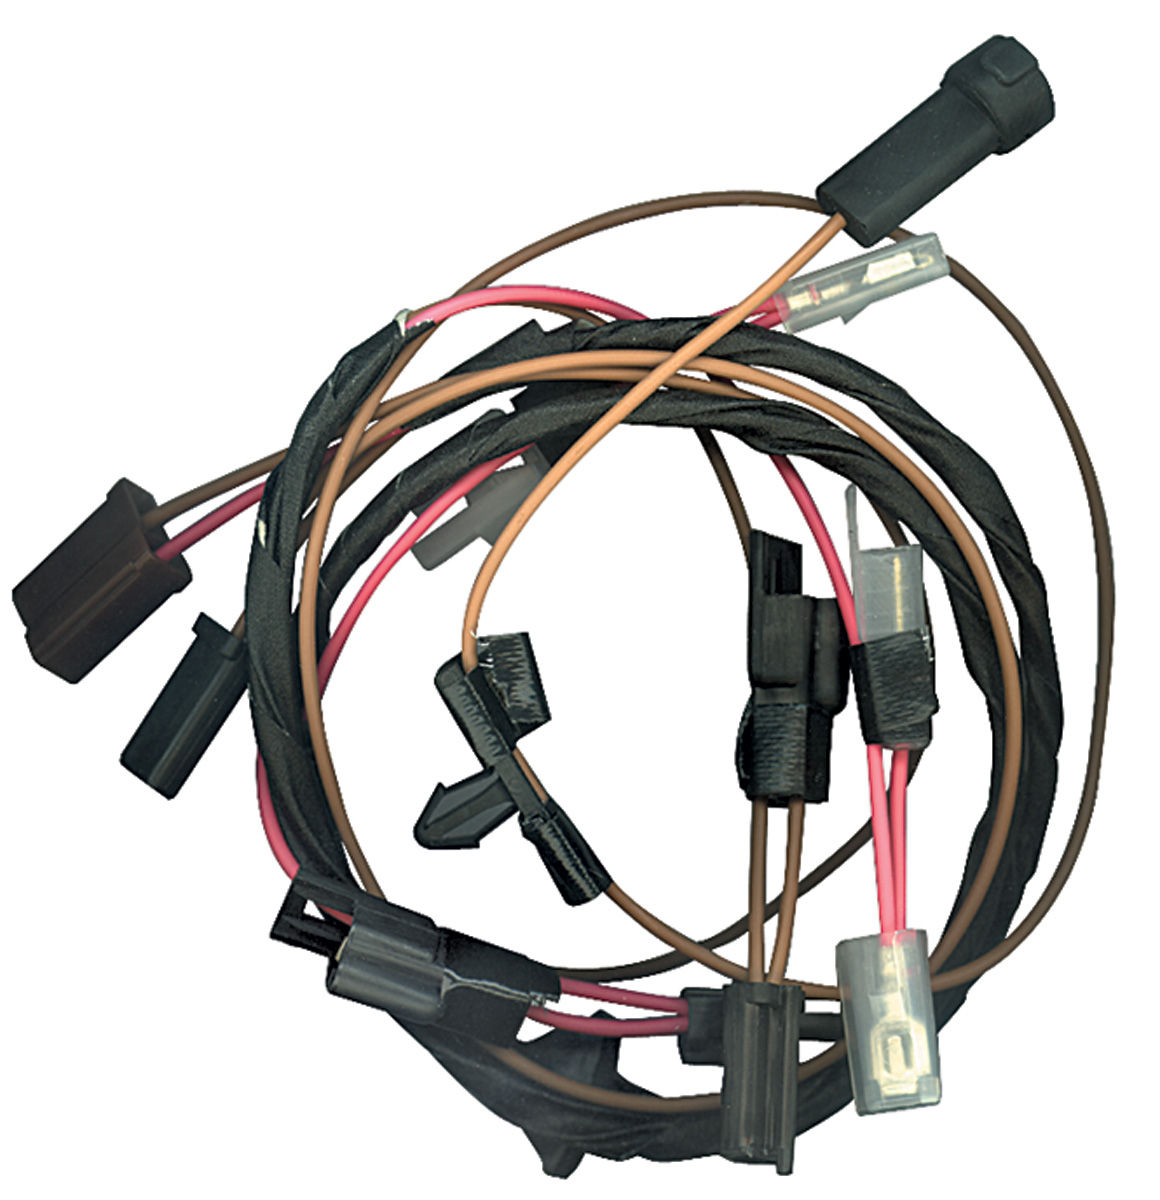 wiring-harness-cowl-induction-1970-72-chevel-cam-cwh8922  Ford F Fuse Box on 83 ford f-150 fuse box, 83 toyota corolla fuse box, 83 ford ranger fuse box,